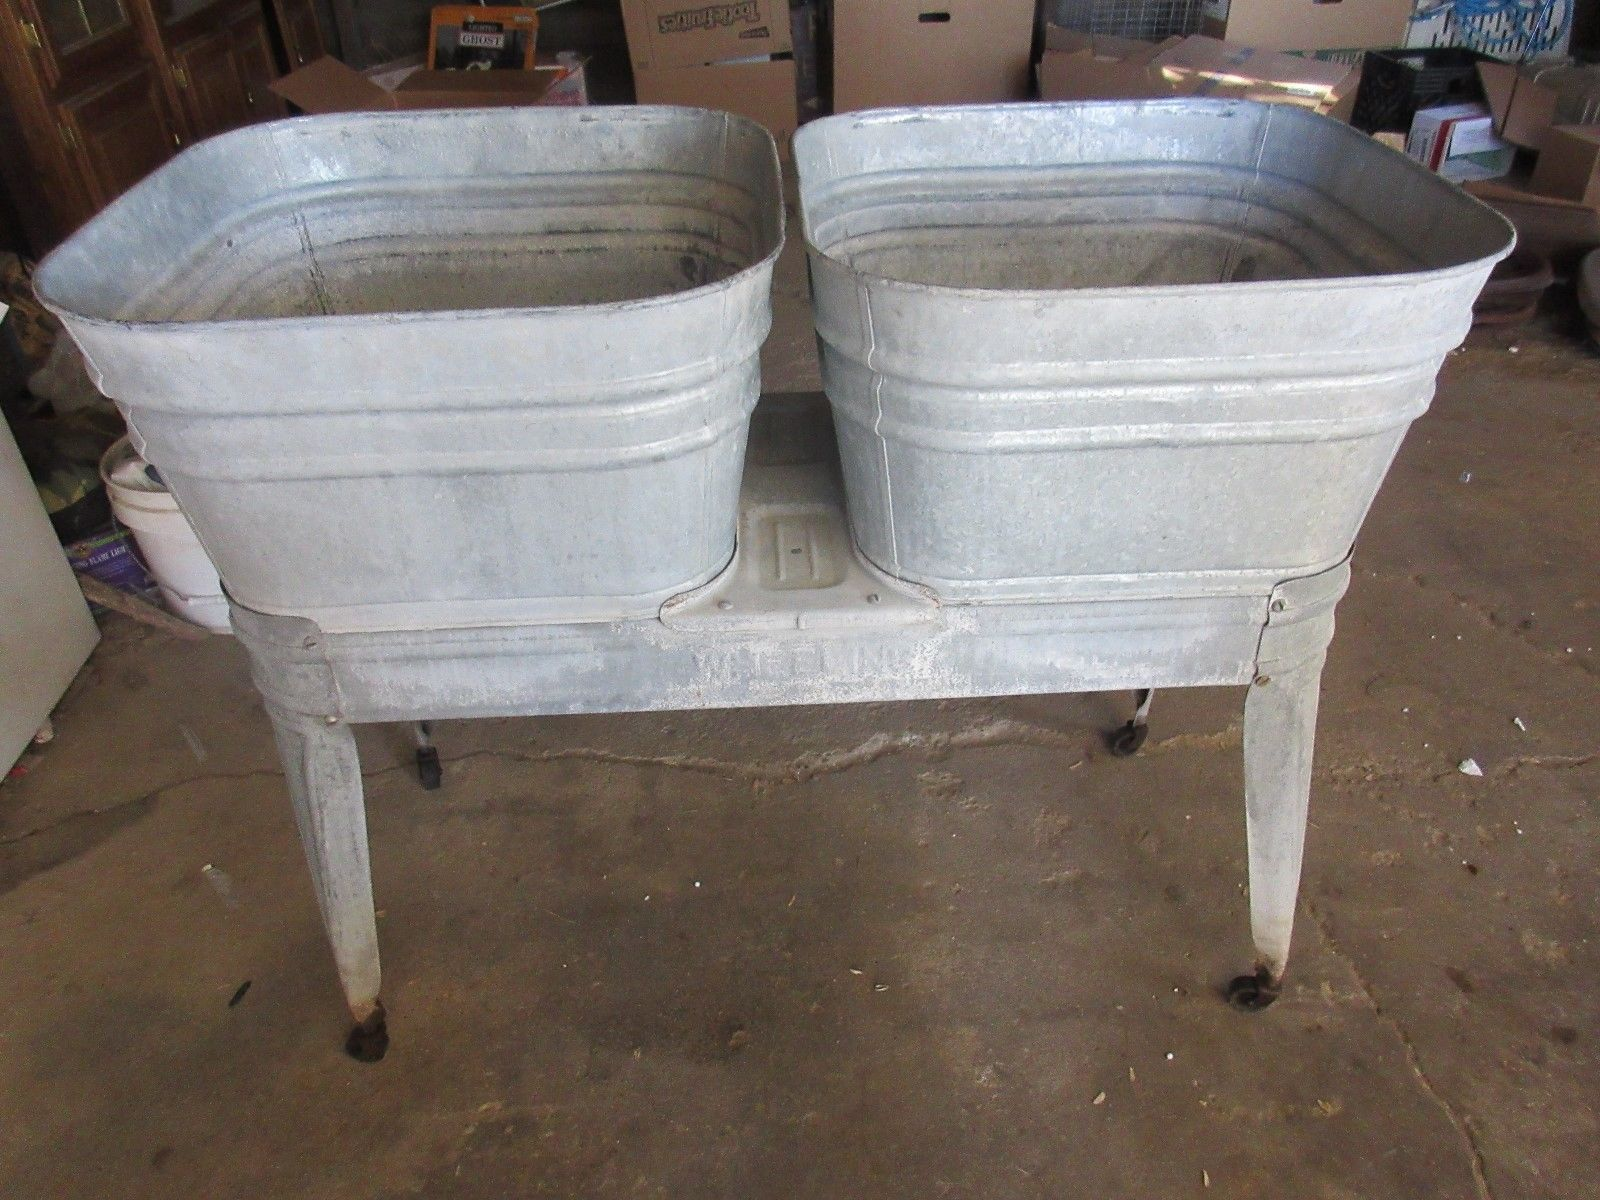 Antique Wheeling Double Wash Tubs With Stand Nice Condition Lot 15 48 90 Wash Tubs Galvanized Wash Tub Tub